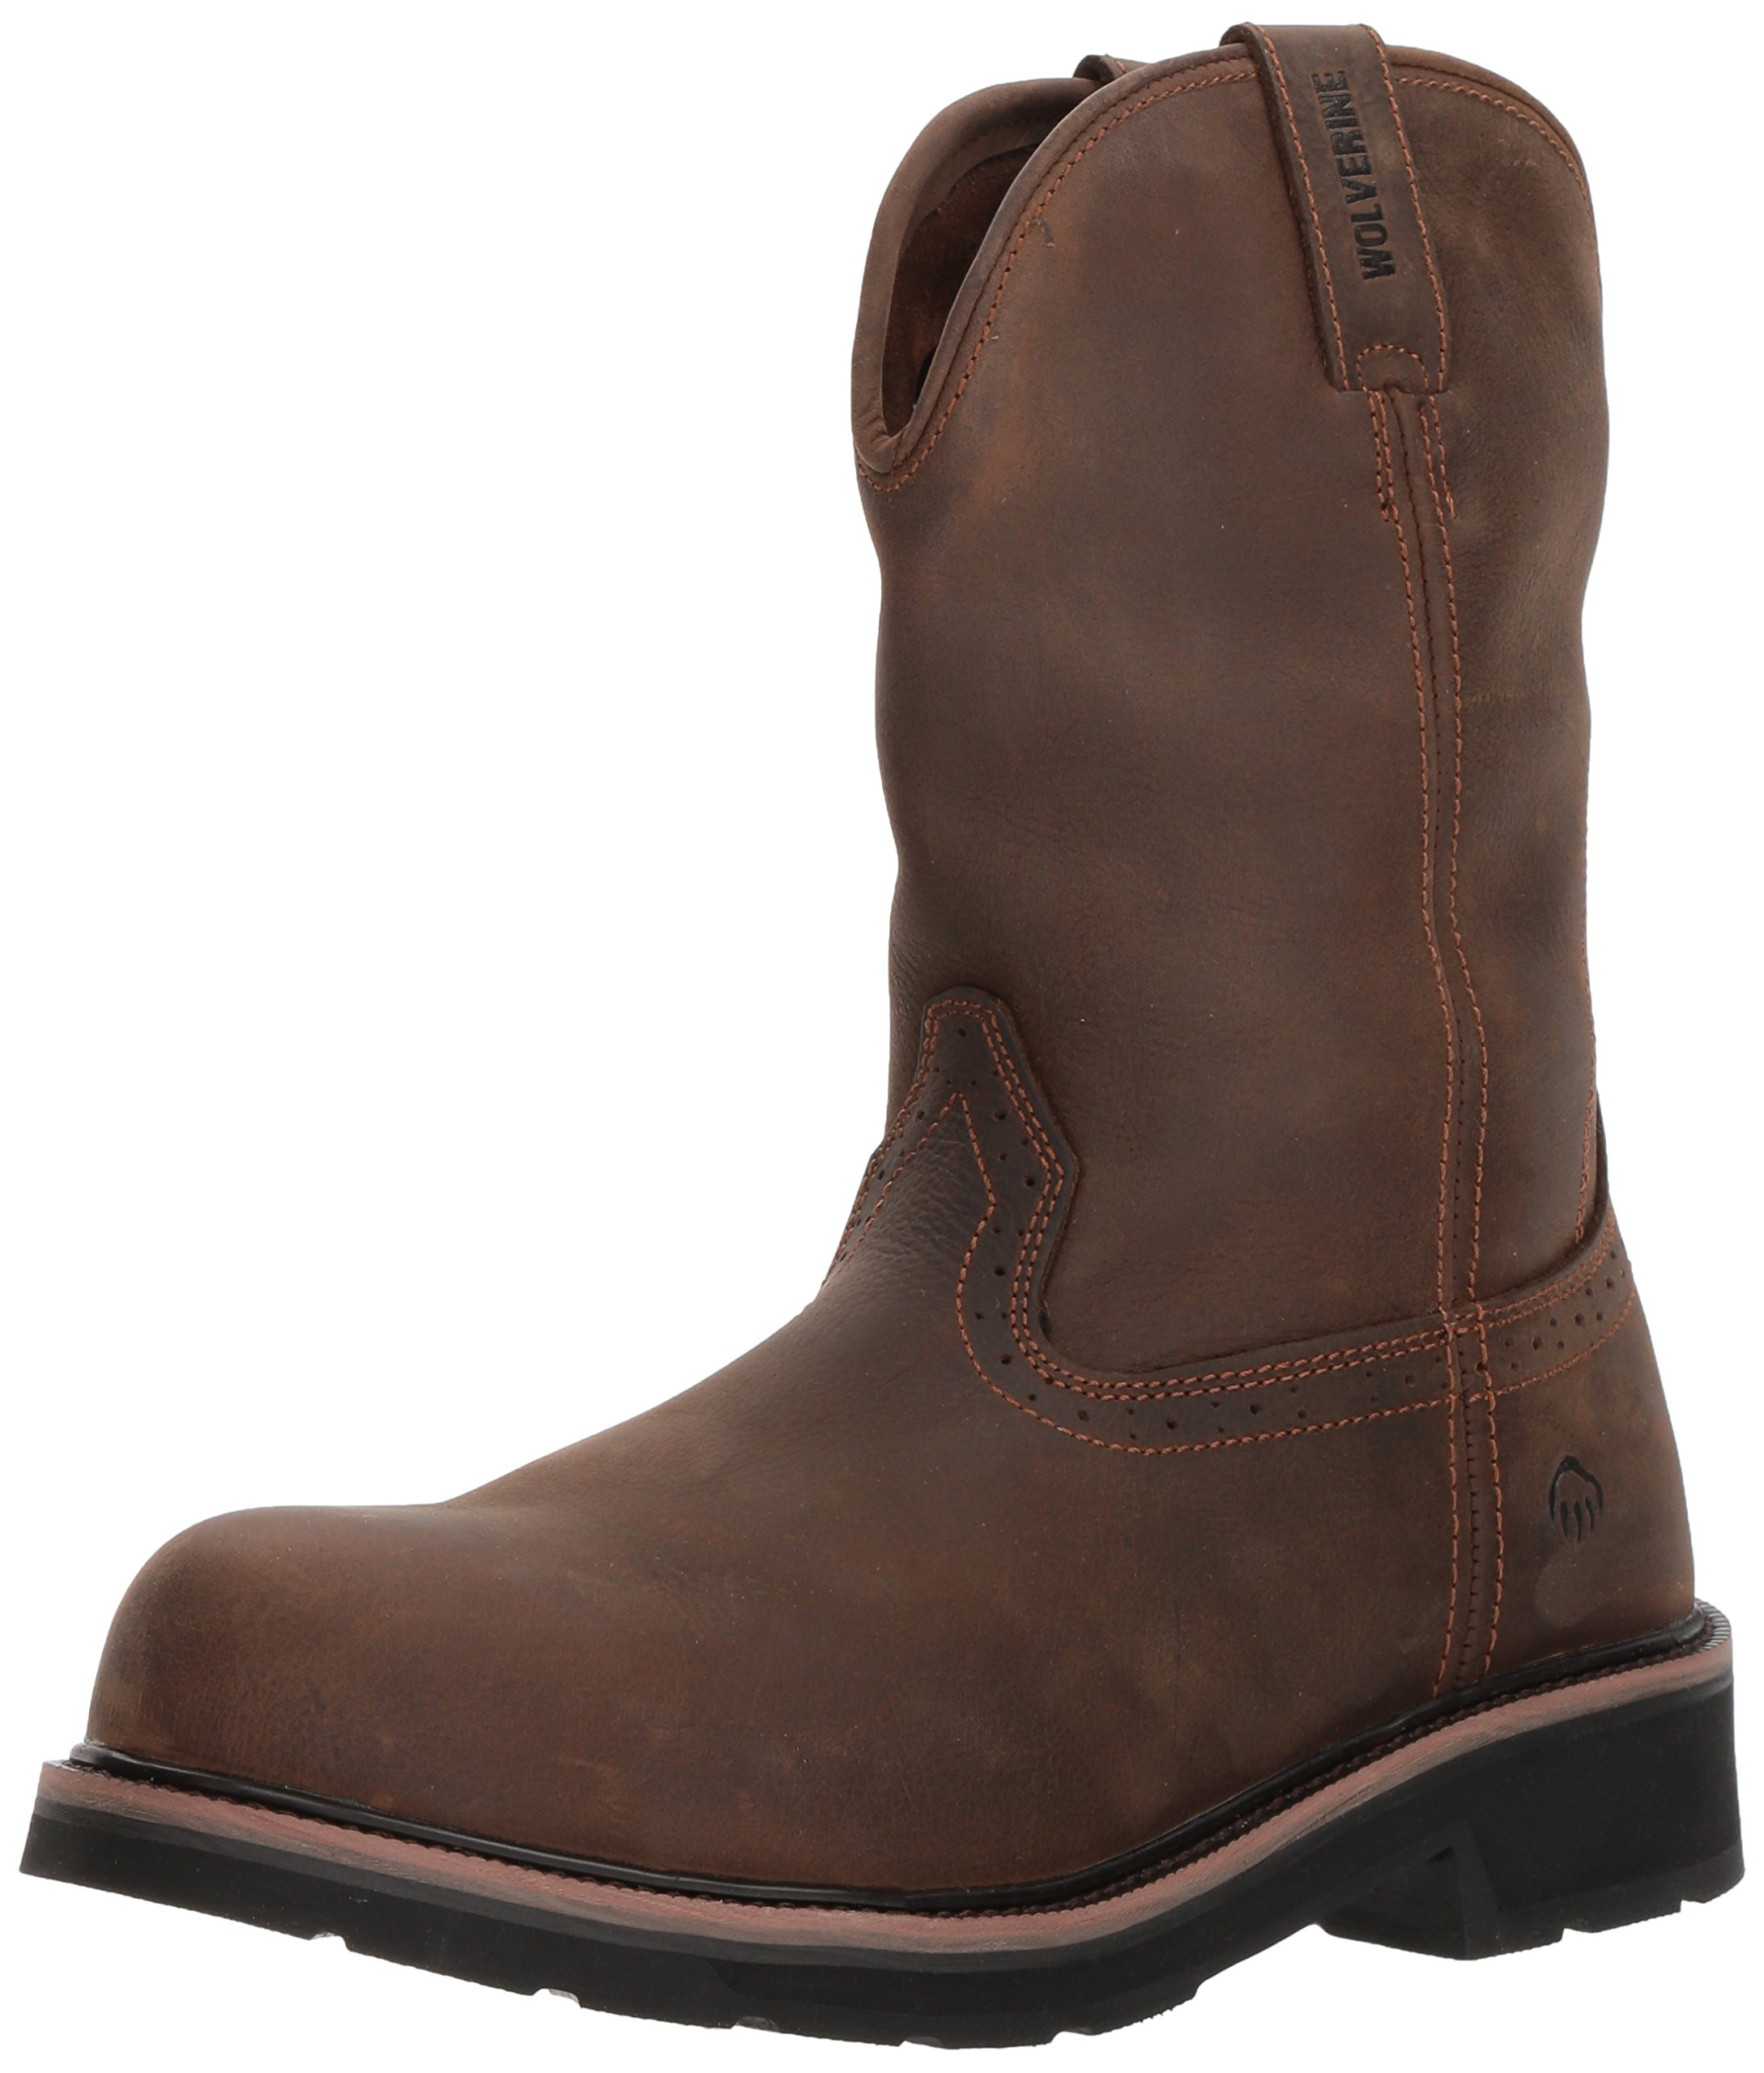 Wolverine Men's Ranchero Steel-Toe Wellington Construction Boot, Summer Brown, 11 Extra Wide US